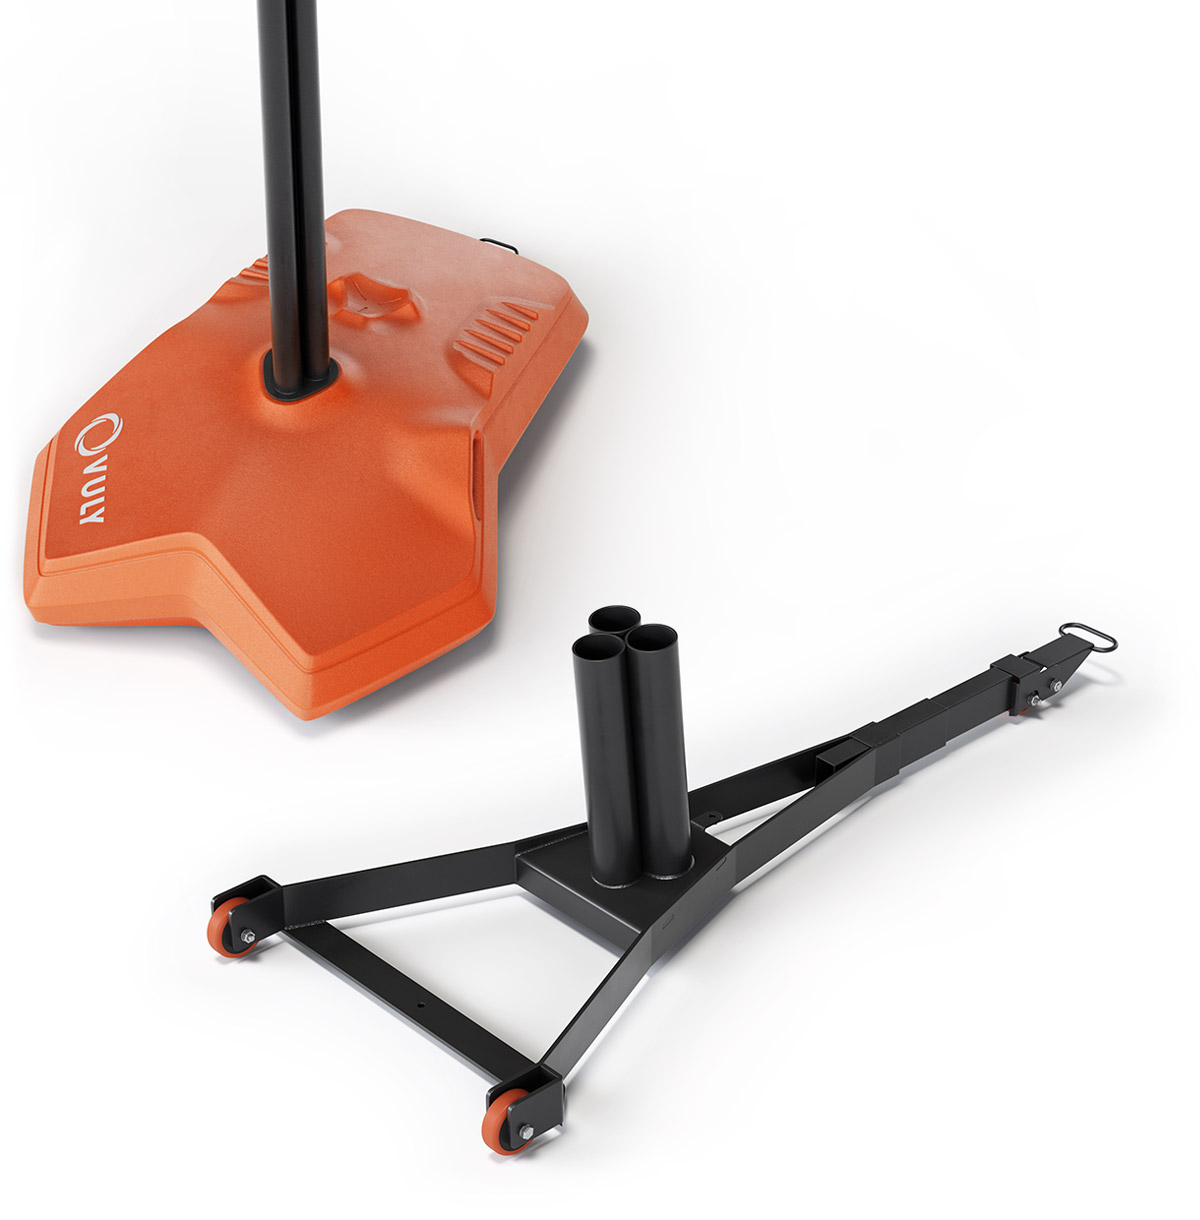 Slam Pro's unique one-piece steel chassis makes it more robust and stable than any other system.